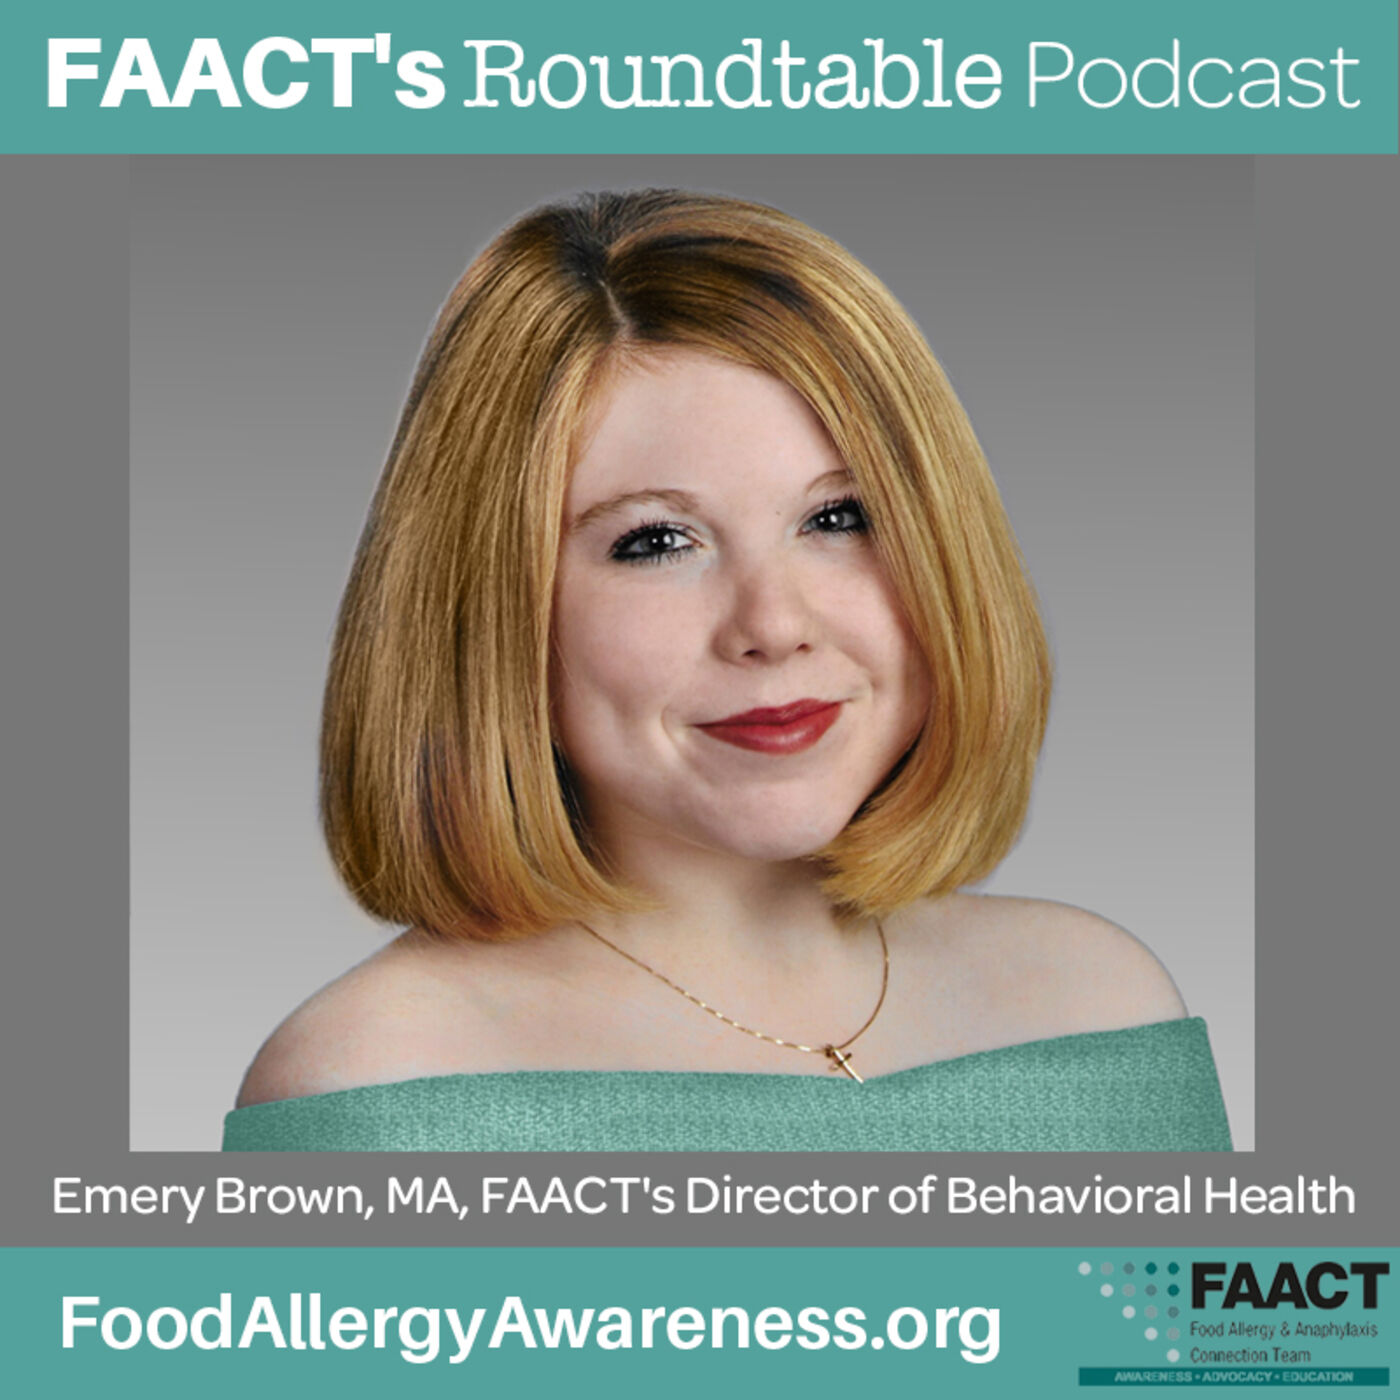 Ep. 60: Exploring Eating Disorders & Disordered Eating with Food Allergies